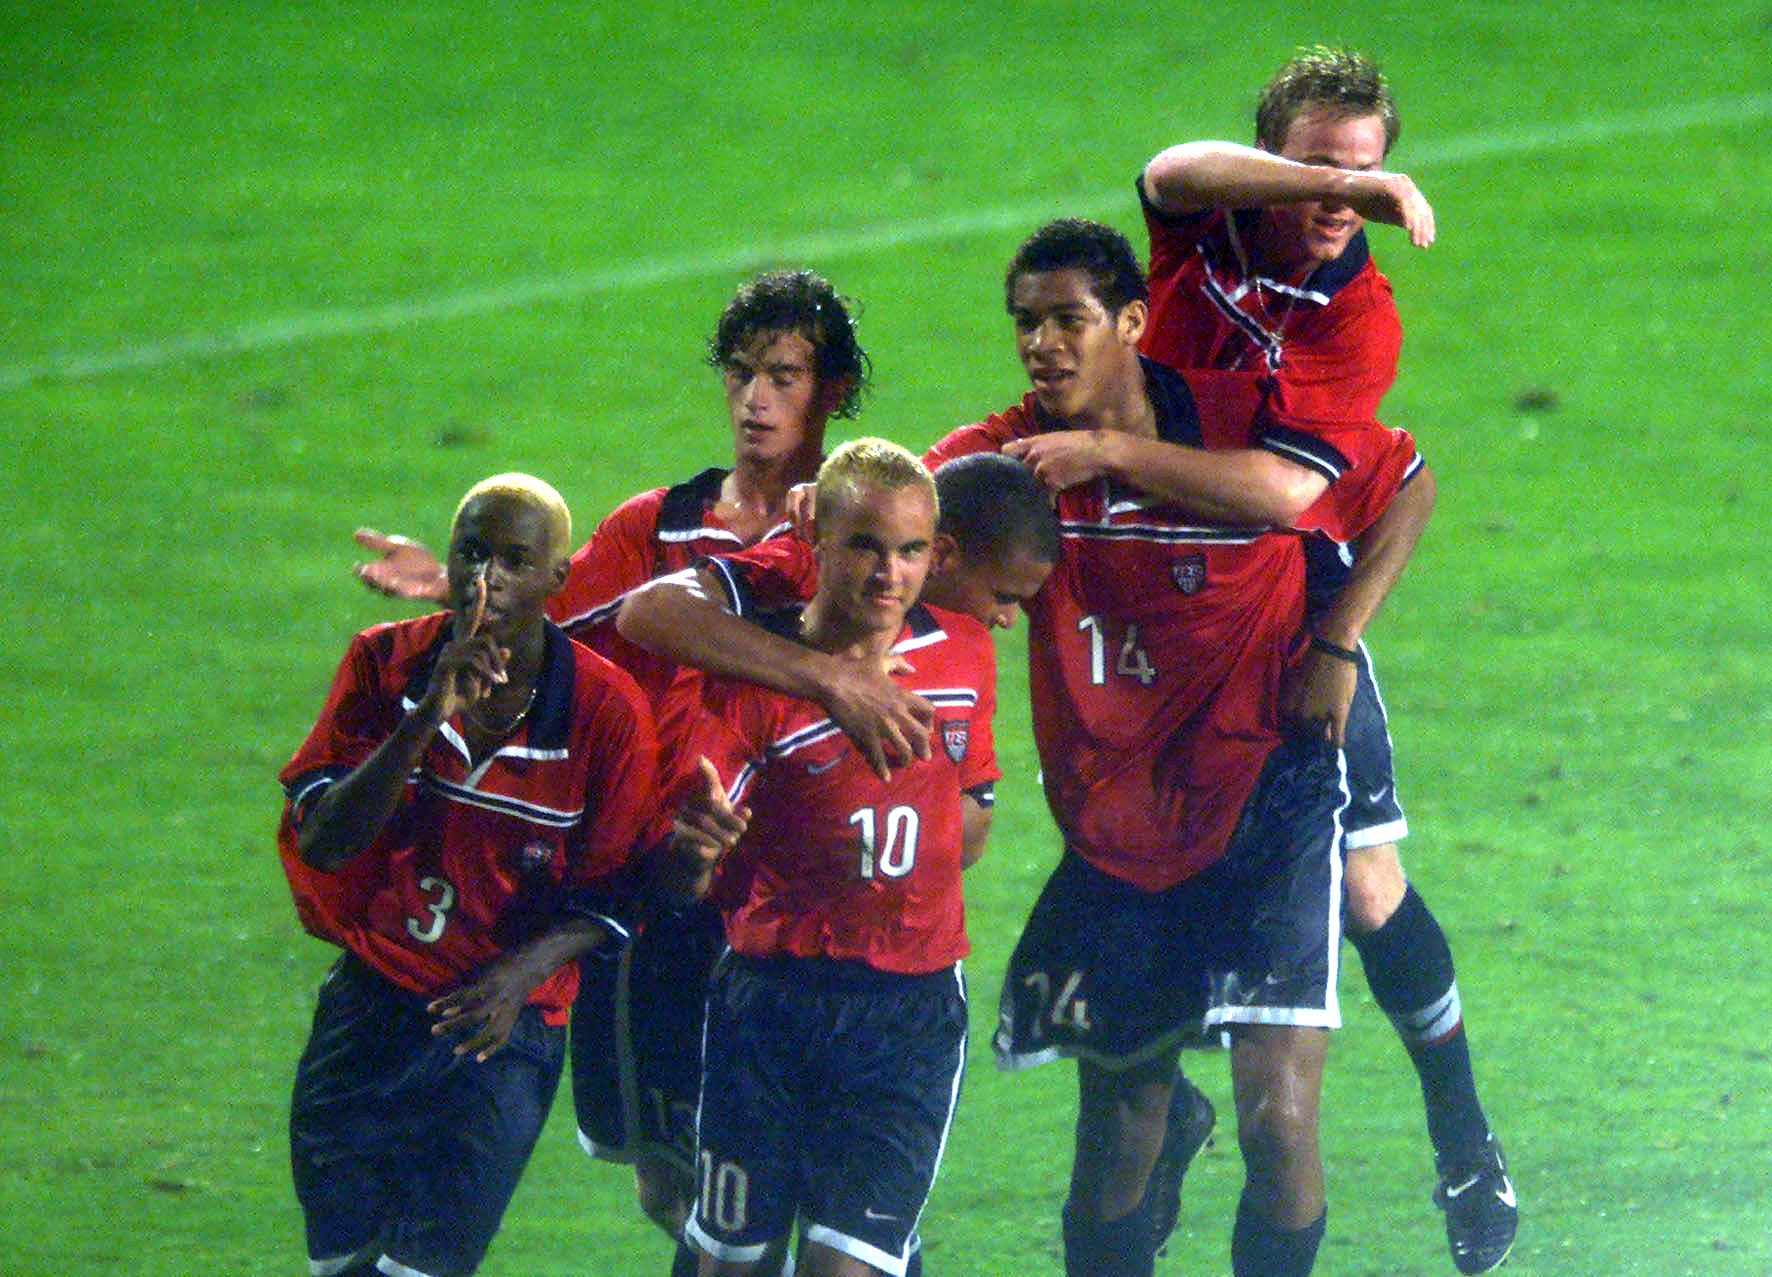 The U.S. U-17 national team of days gone by, with a few notable faces.